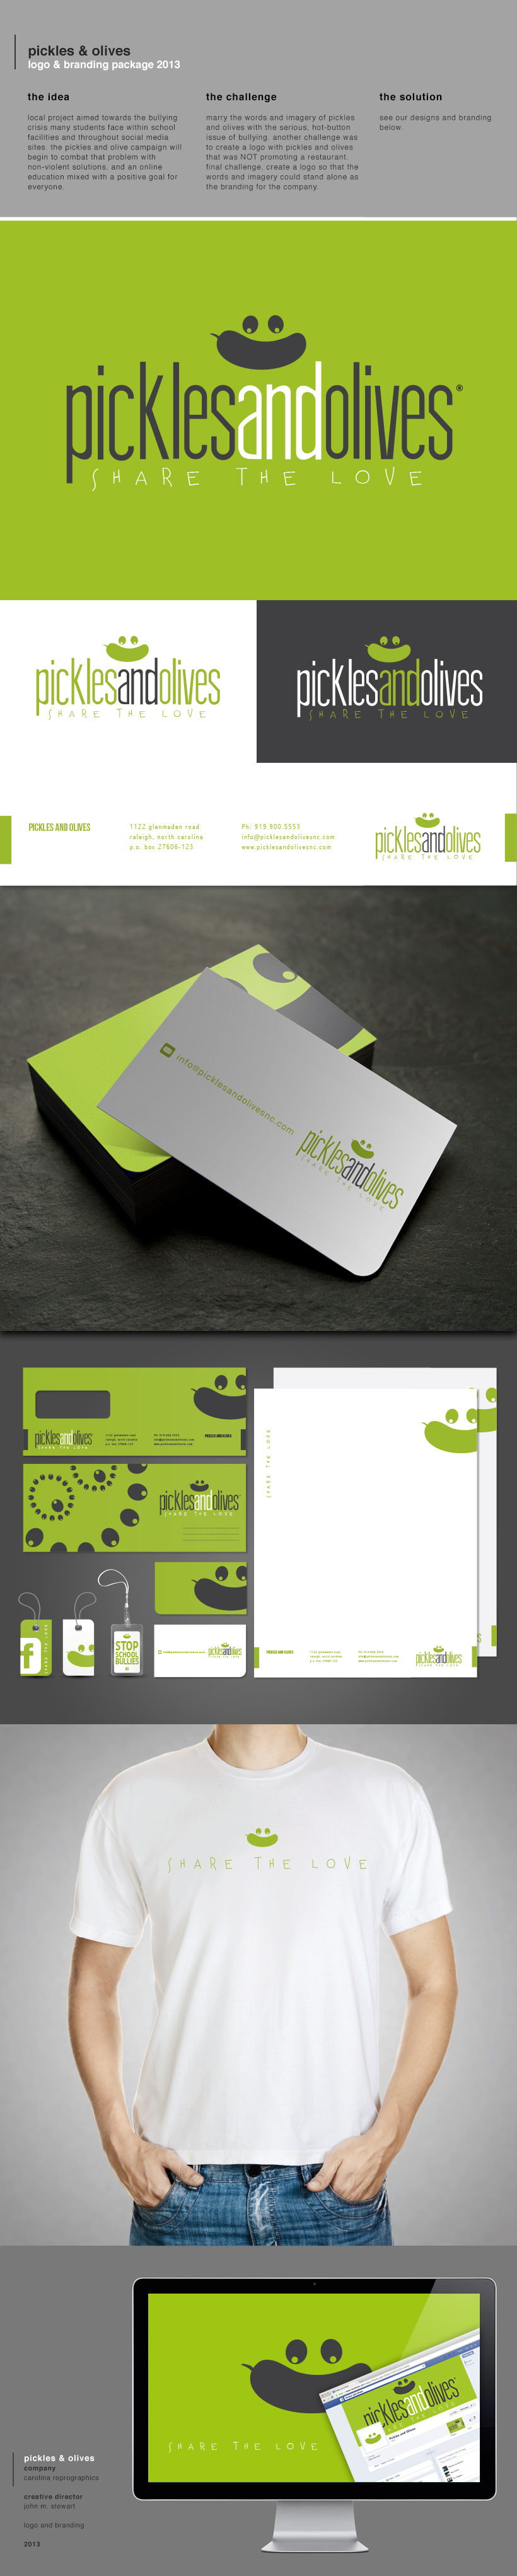 aiga_pickles_project-graphic